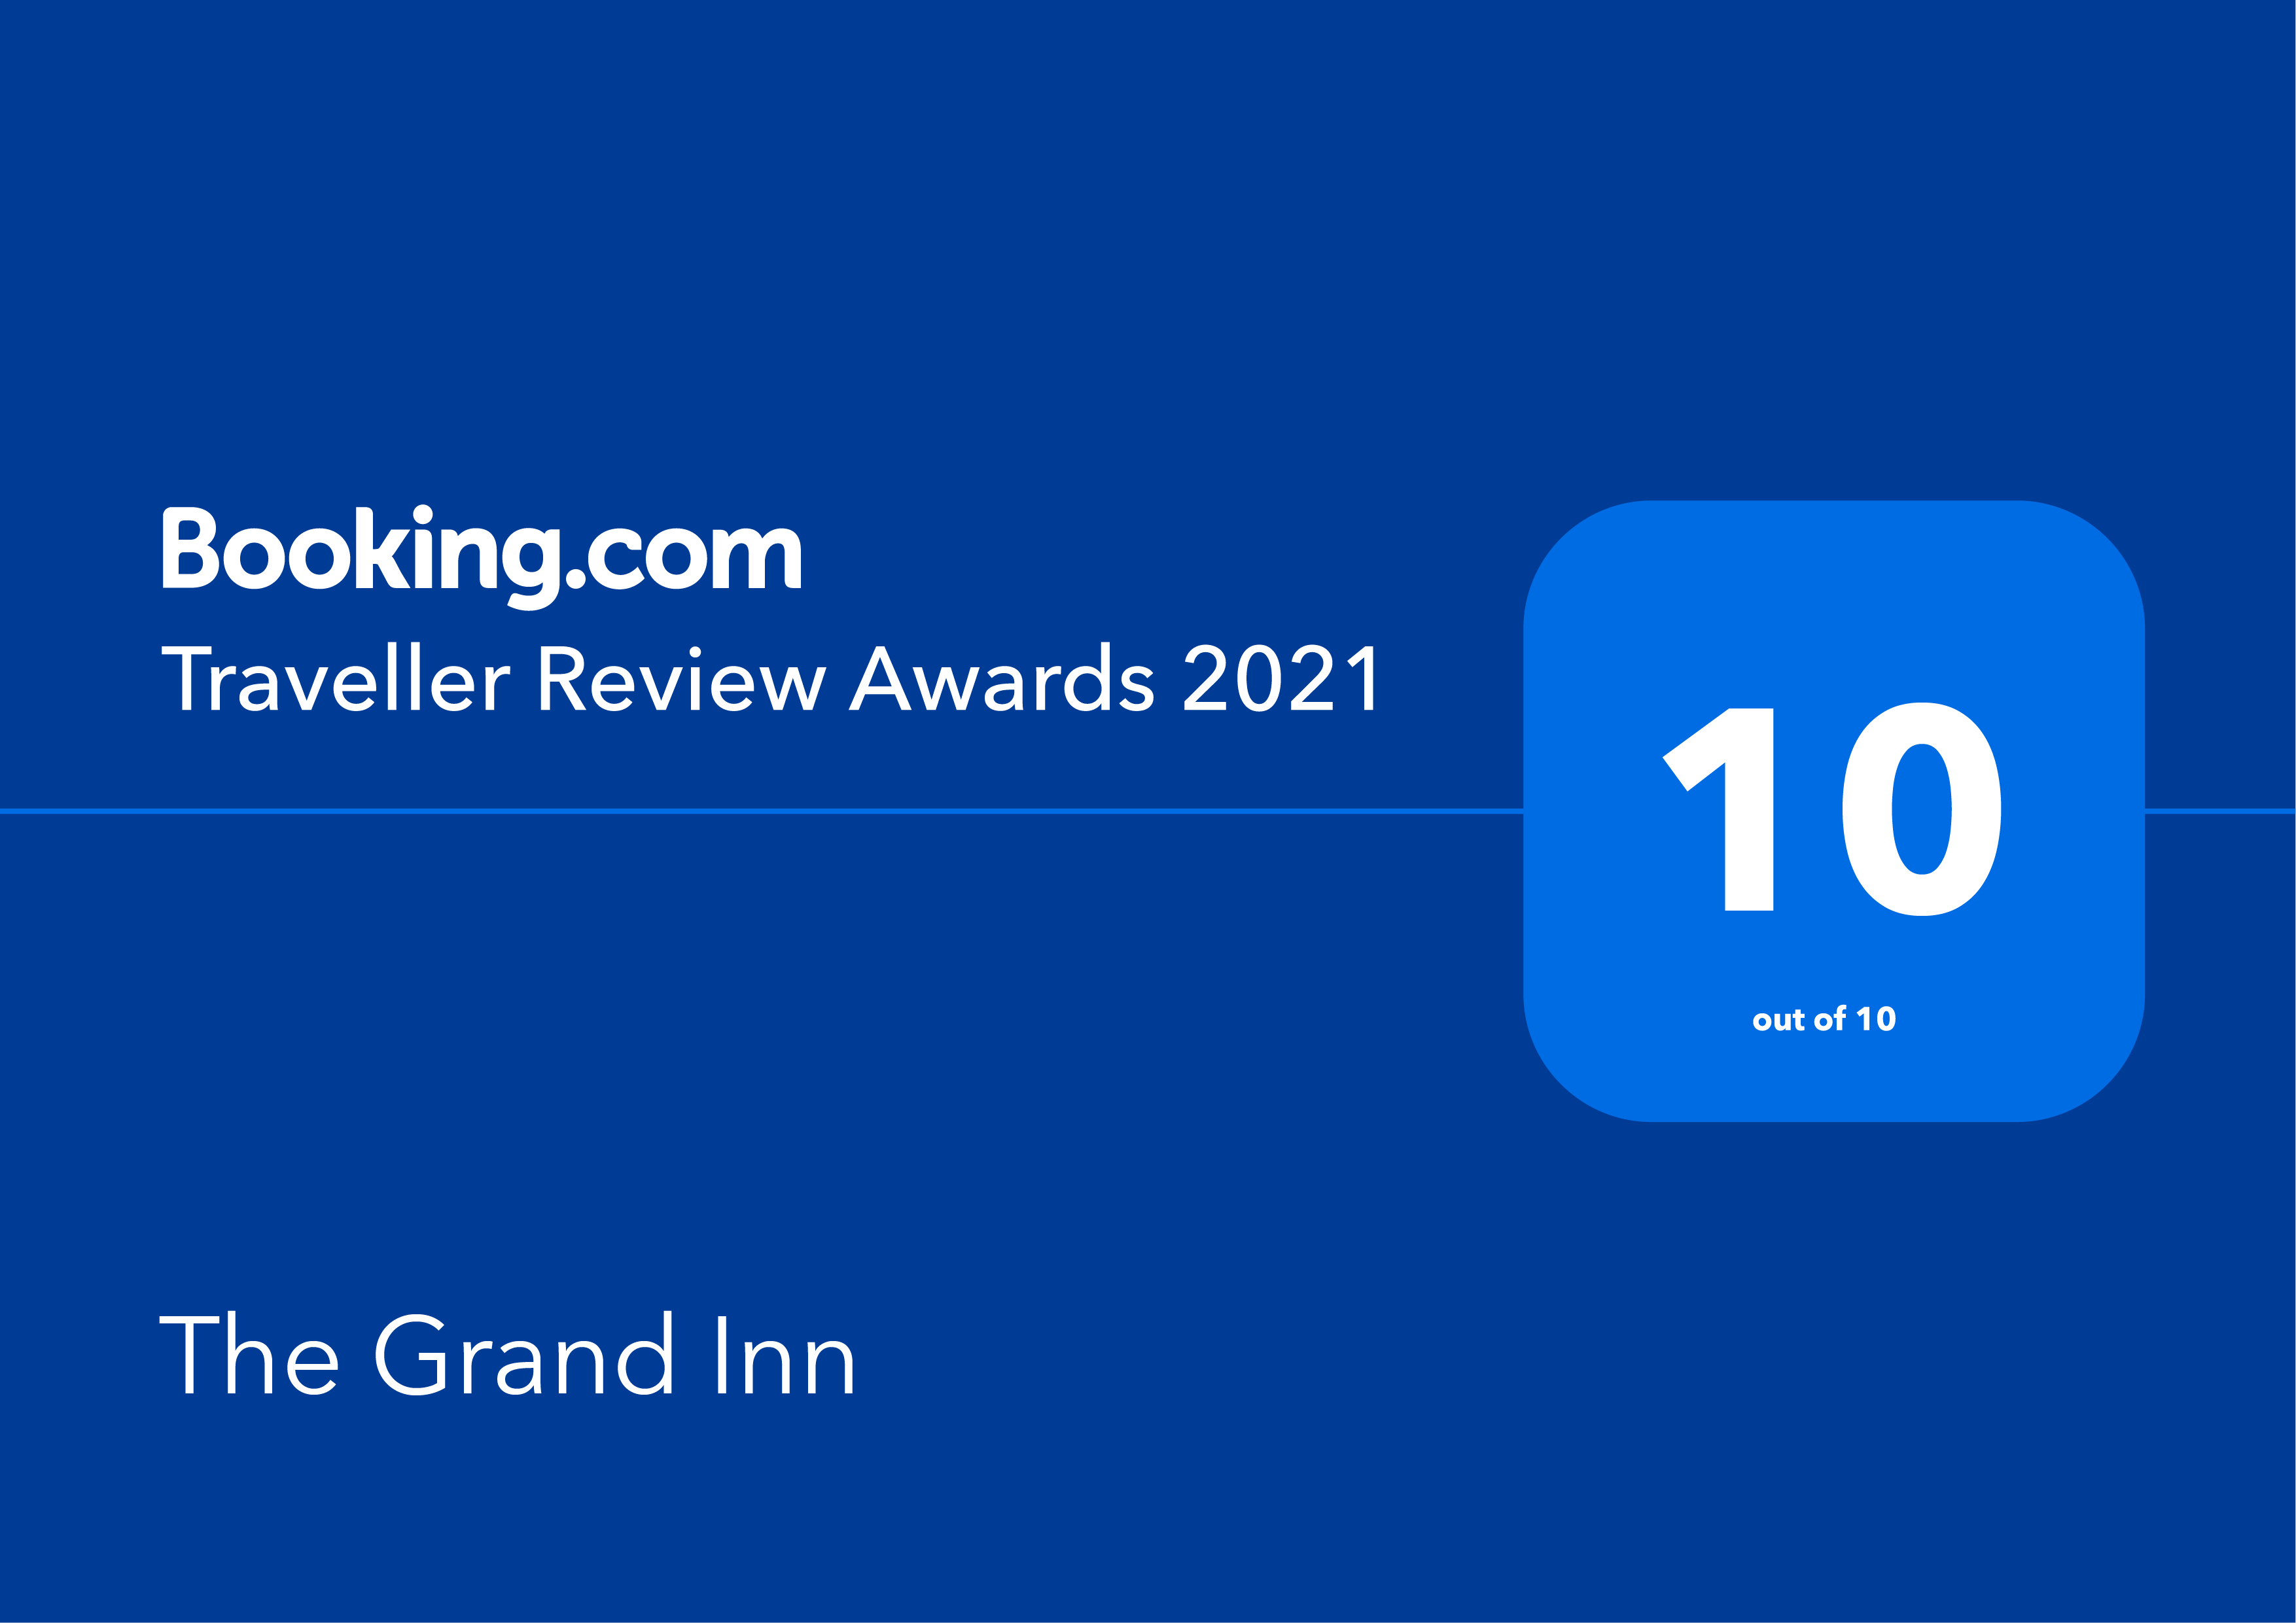 Booking.com、全世界の100万を超えるパートナー施設がTraveller Review Awards 2021を受賞